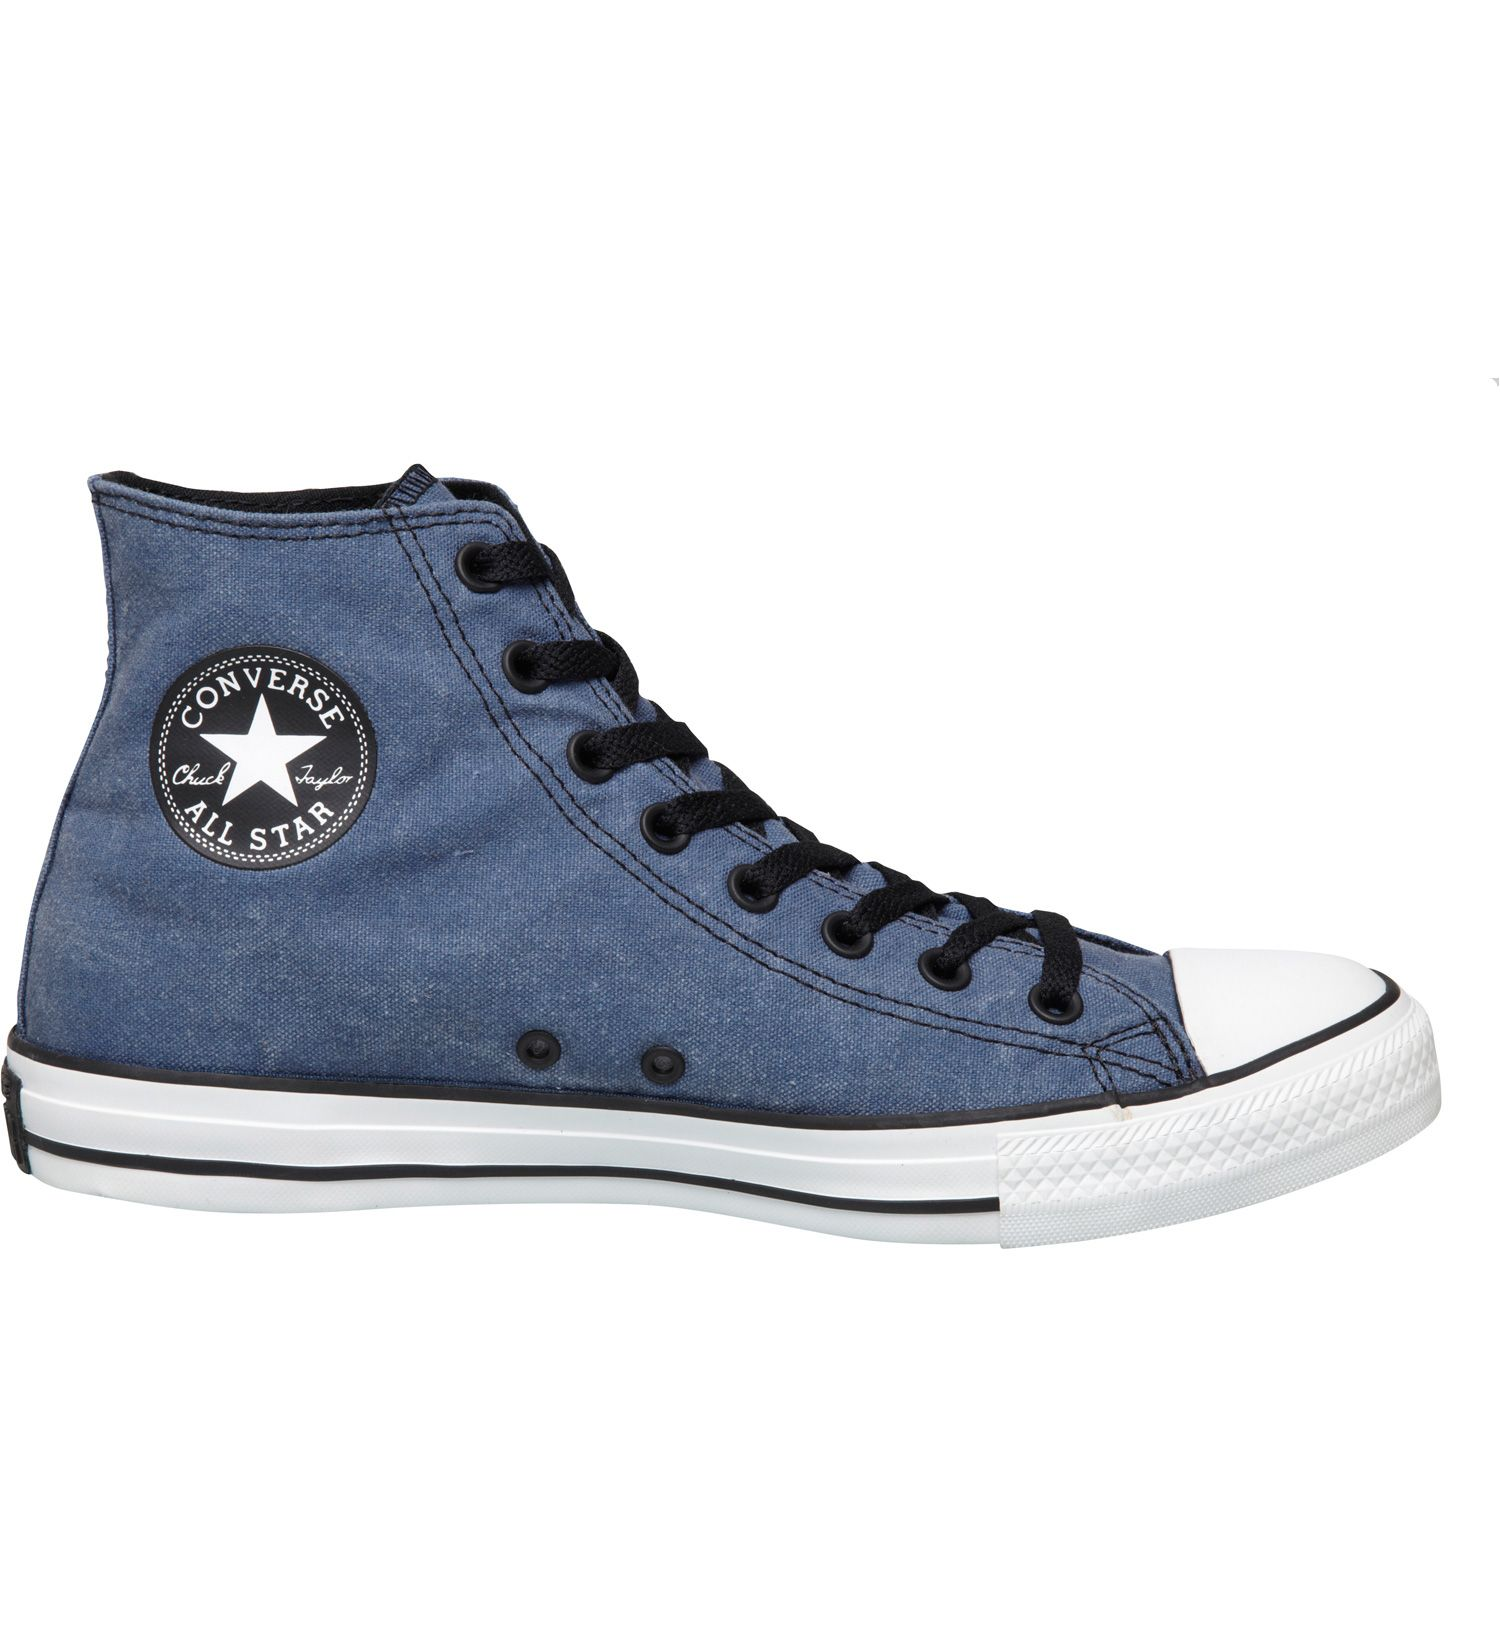 Converse All Star Ct As Hi Denim Destroyed Sneakers & Tennis Montantes Homme. abku3tBp